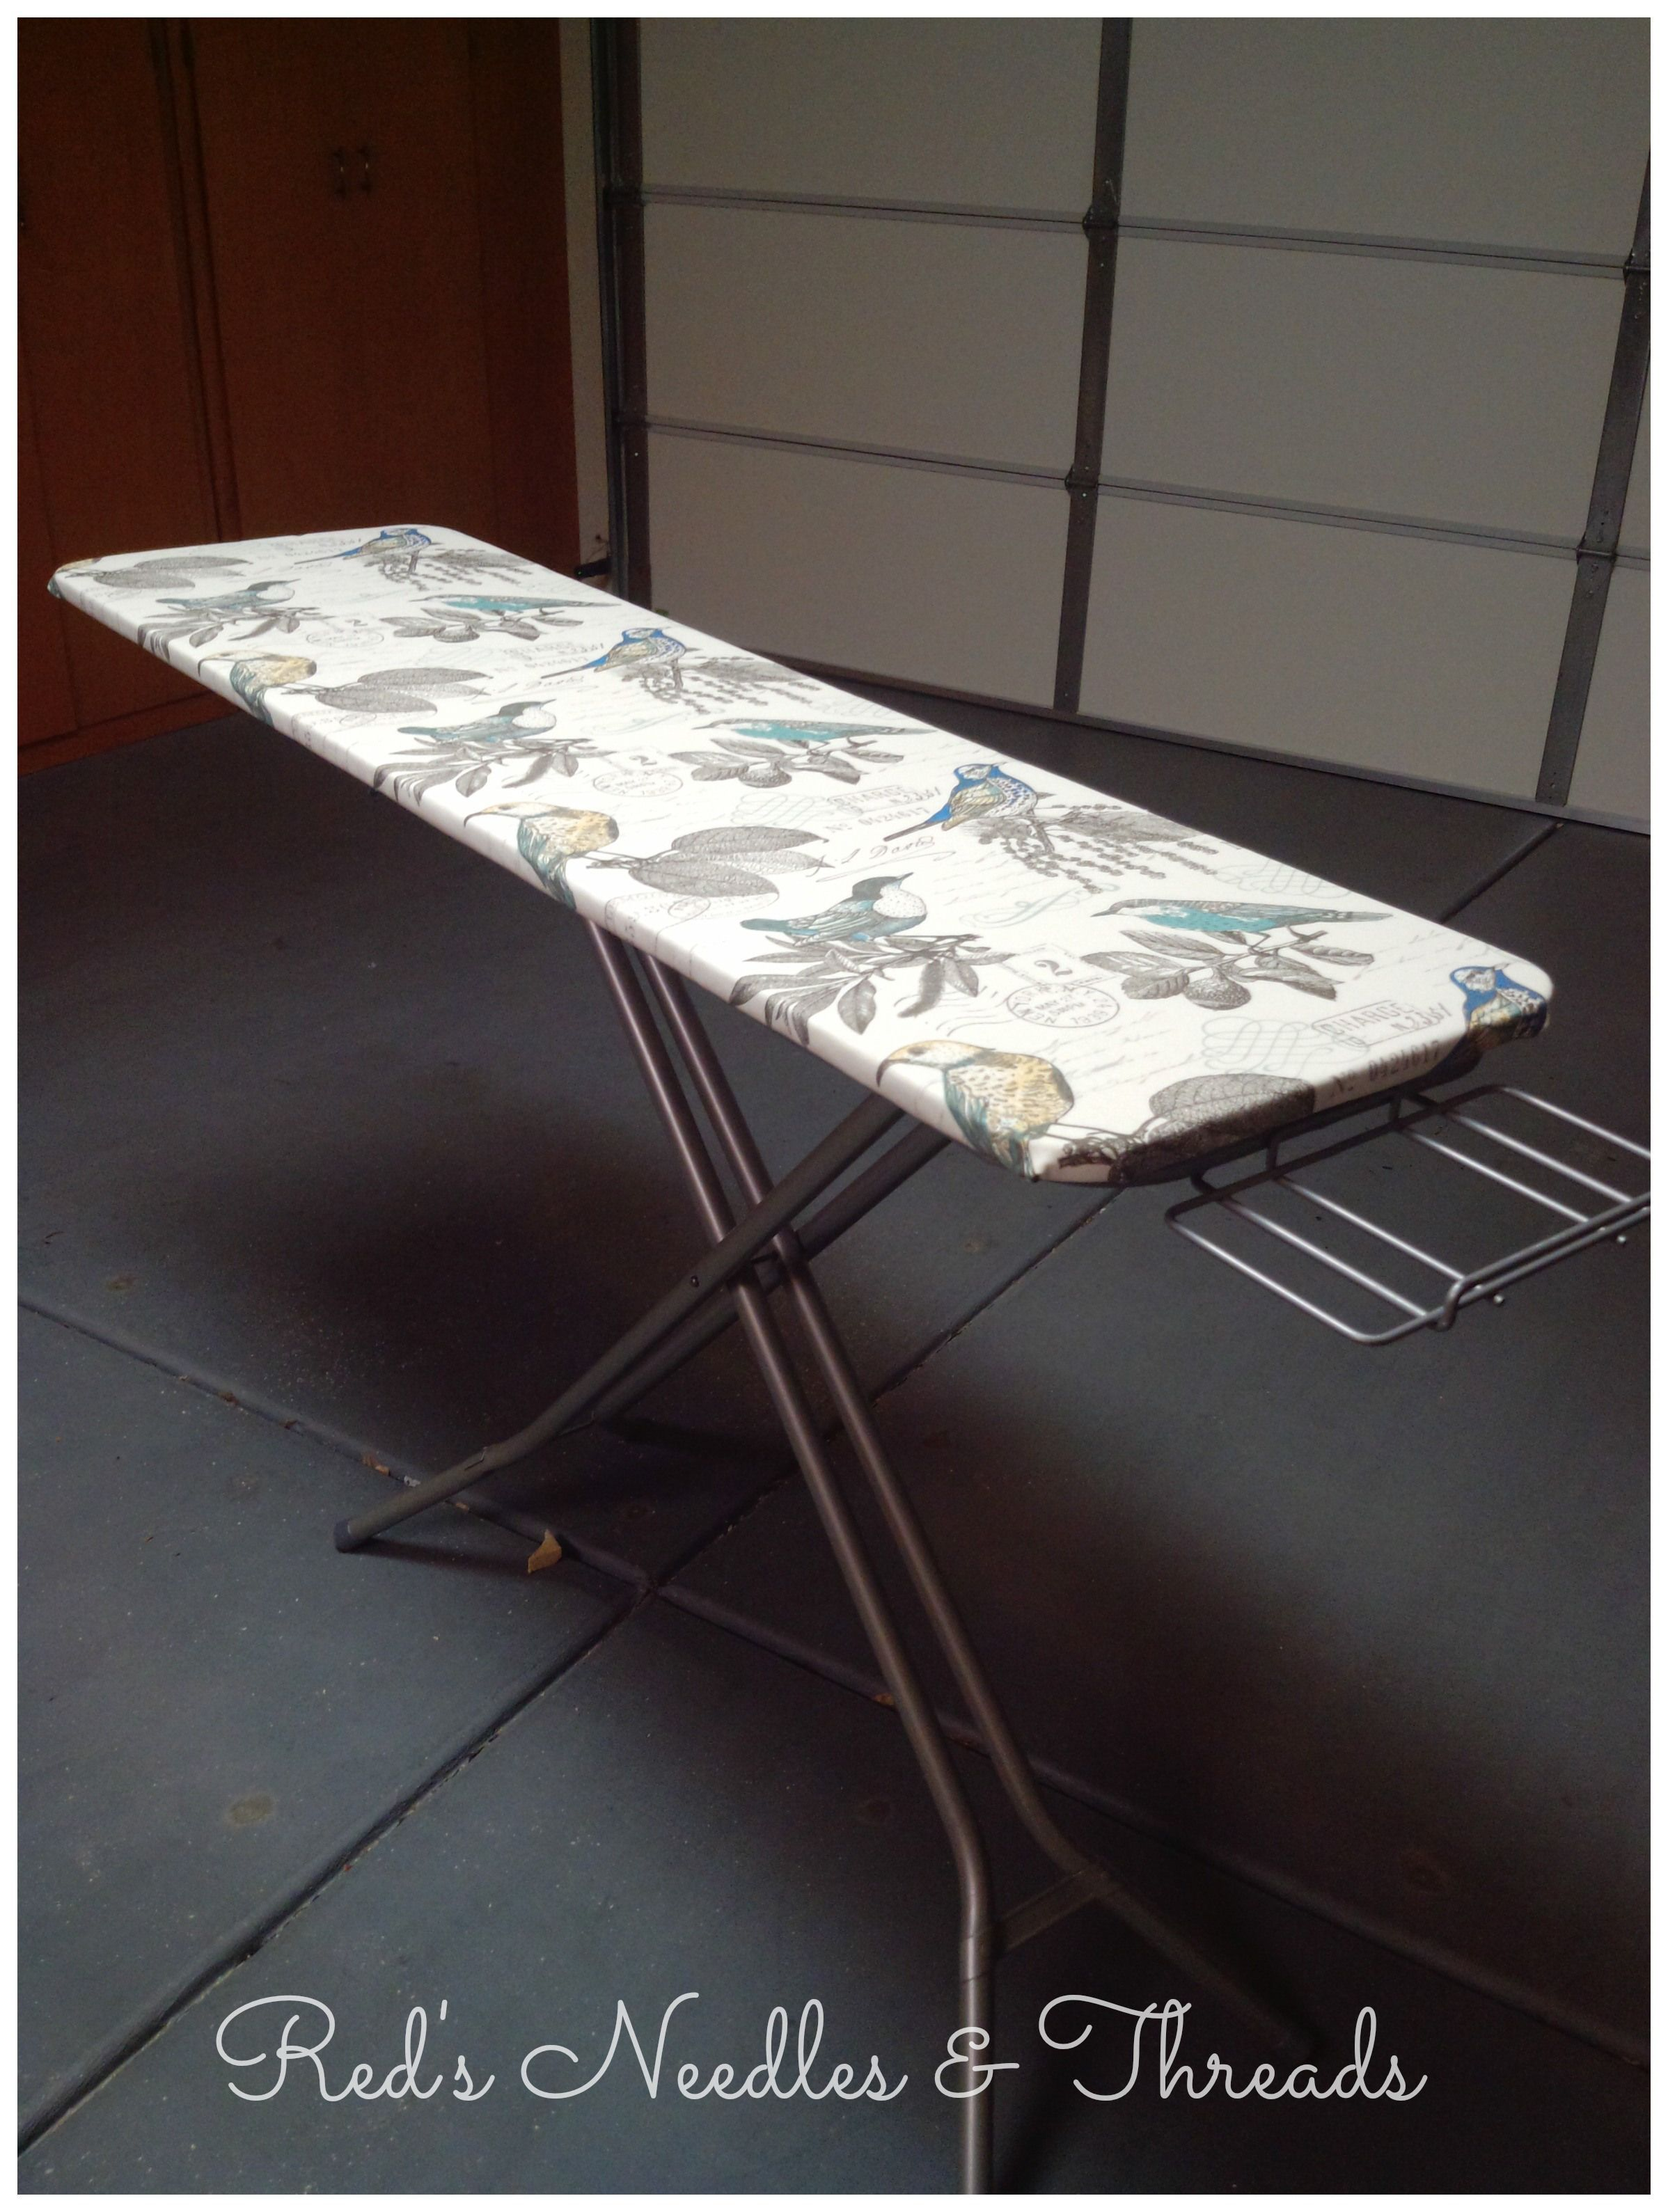 Make Your Own Pressing Board! | R&B: Sewing|Stitching|Crafting ... : wide ironing board for quilting - Adamdwight.com